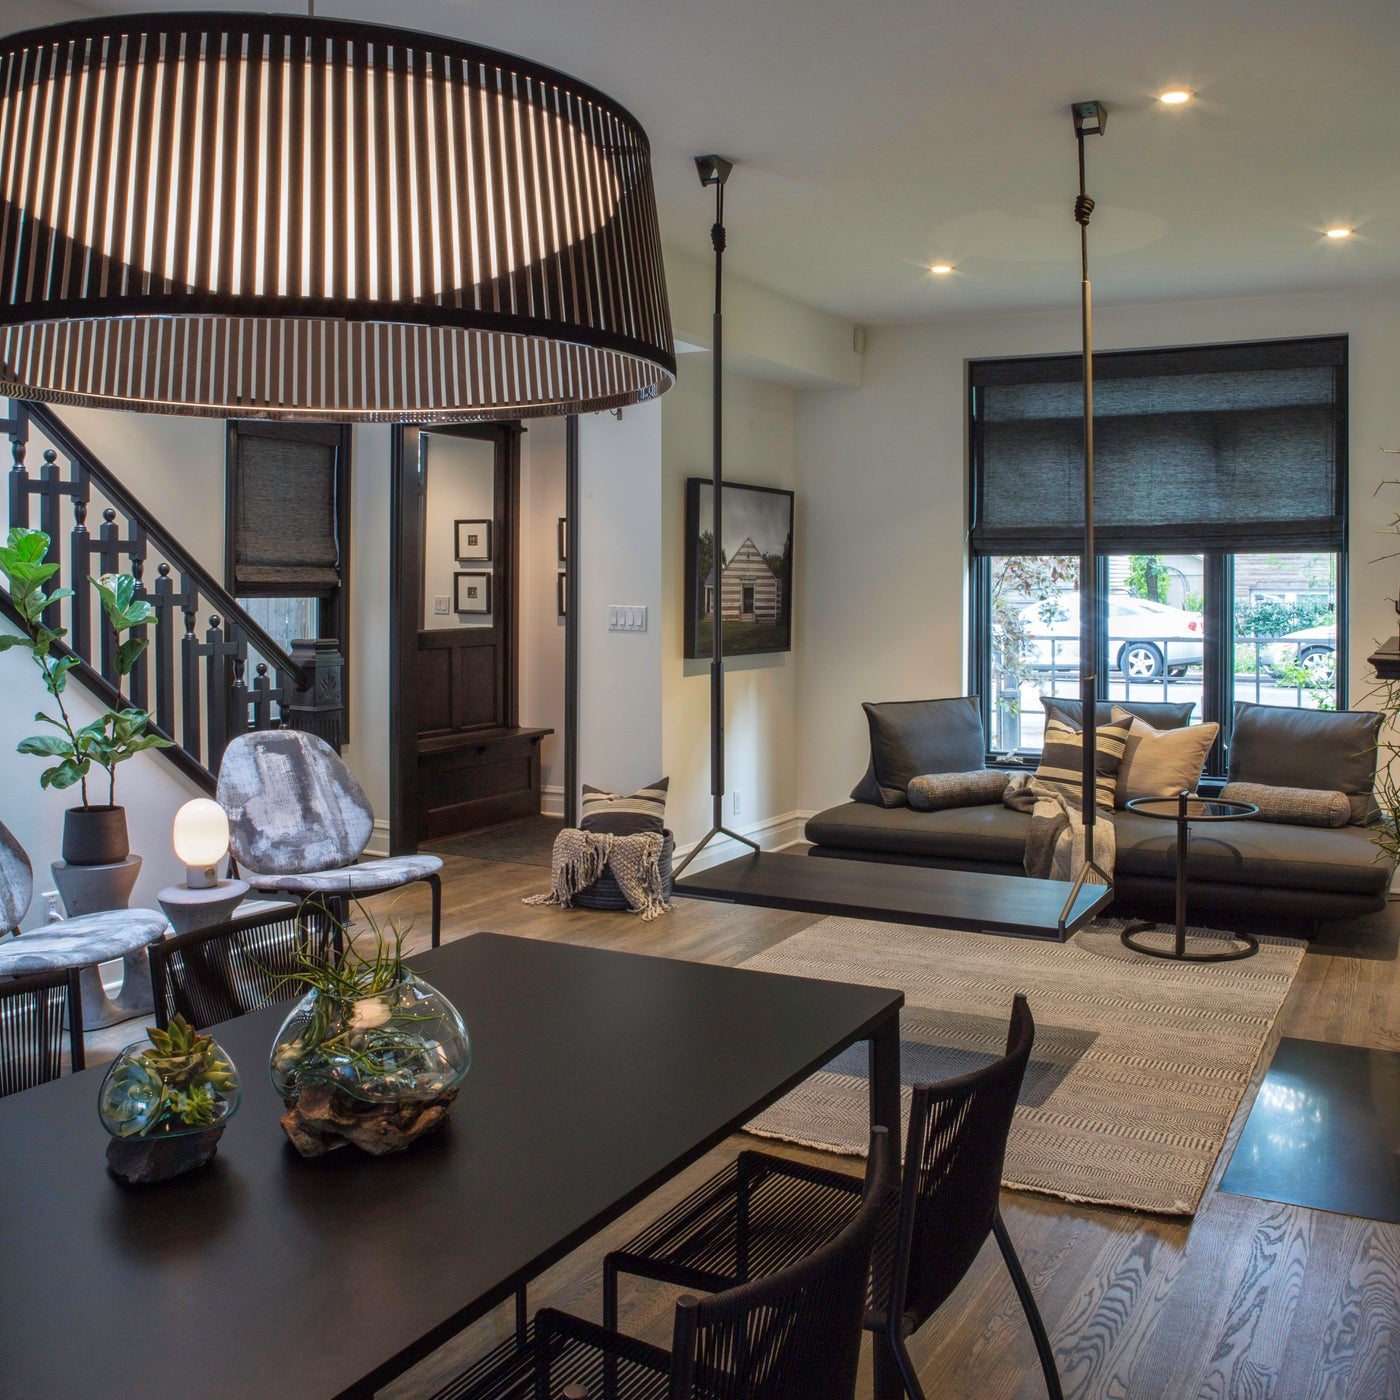 Bucktown vintage modern home with open concept living spaces